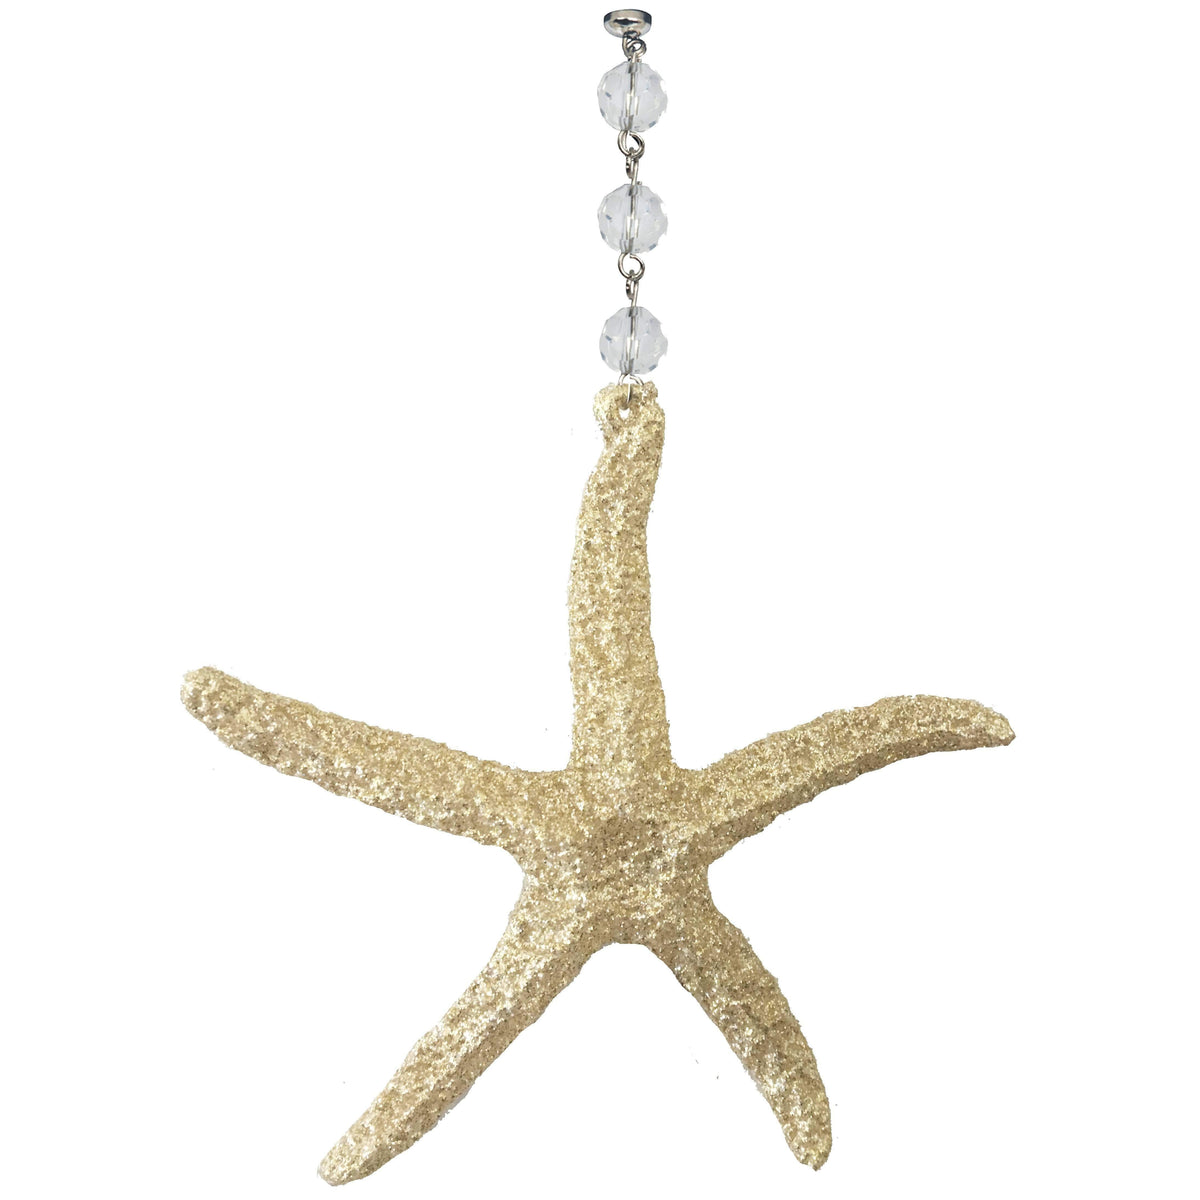 GLITTER GOLD STARFISH (Set/3) MAGNETIC COASTAL ORNAMENT - Magnetic Chandelier Accessory TrimKit® Chandelier Crystals | Magnetic Crystals | Lamp Crystals MagTrim  (1369842319462)